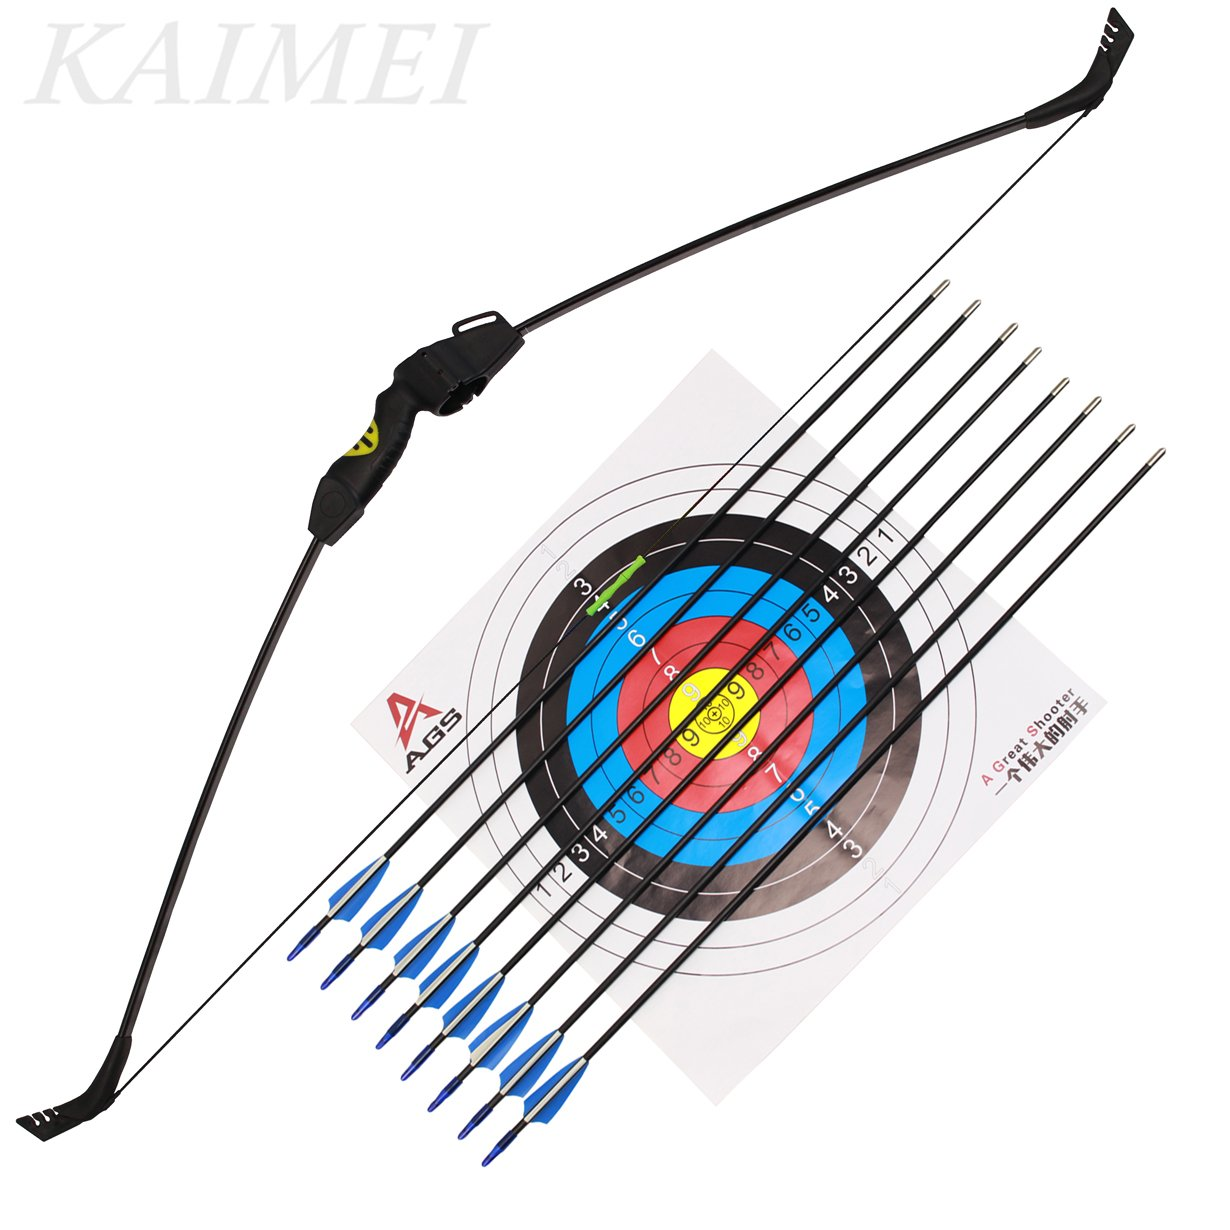 kaimei 48Inch Takedown Recurve Bow Archery for Youth Beginner Practice Hunting and Outdoor Shooting Weight Adjustable Right and Left Hand with 8 PCS Fiberglass Arrows